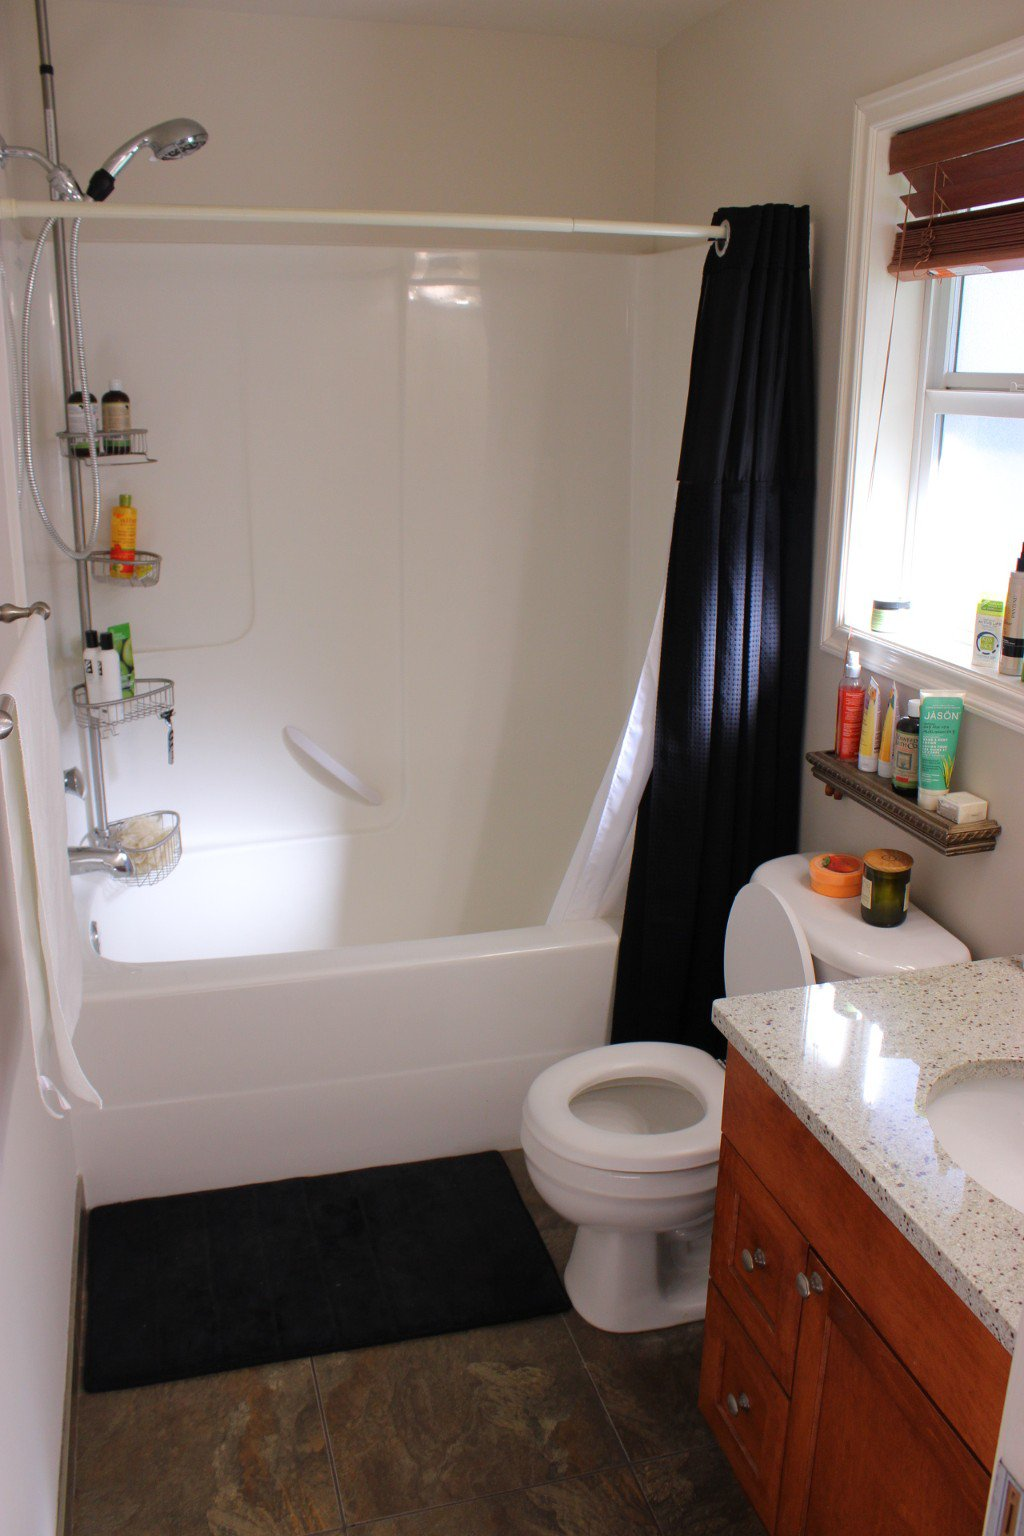 Photo 11: Photos: 2576 Willowbrae Court in Kamloops: Aberdeen House for sale : MLS®# 124898